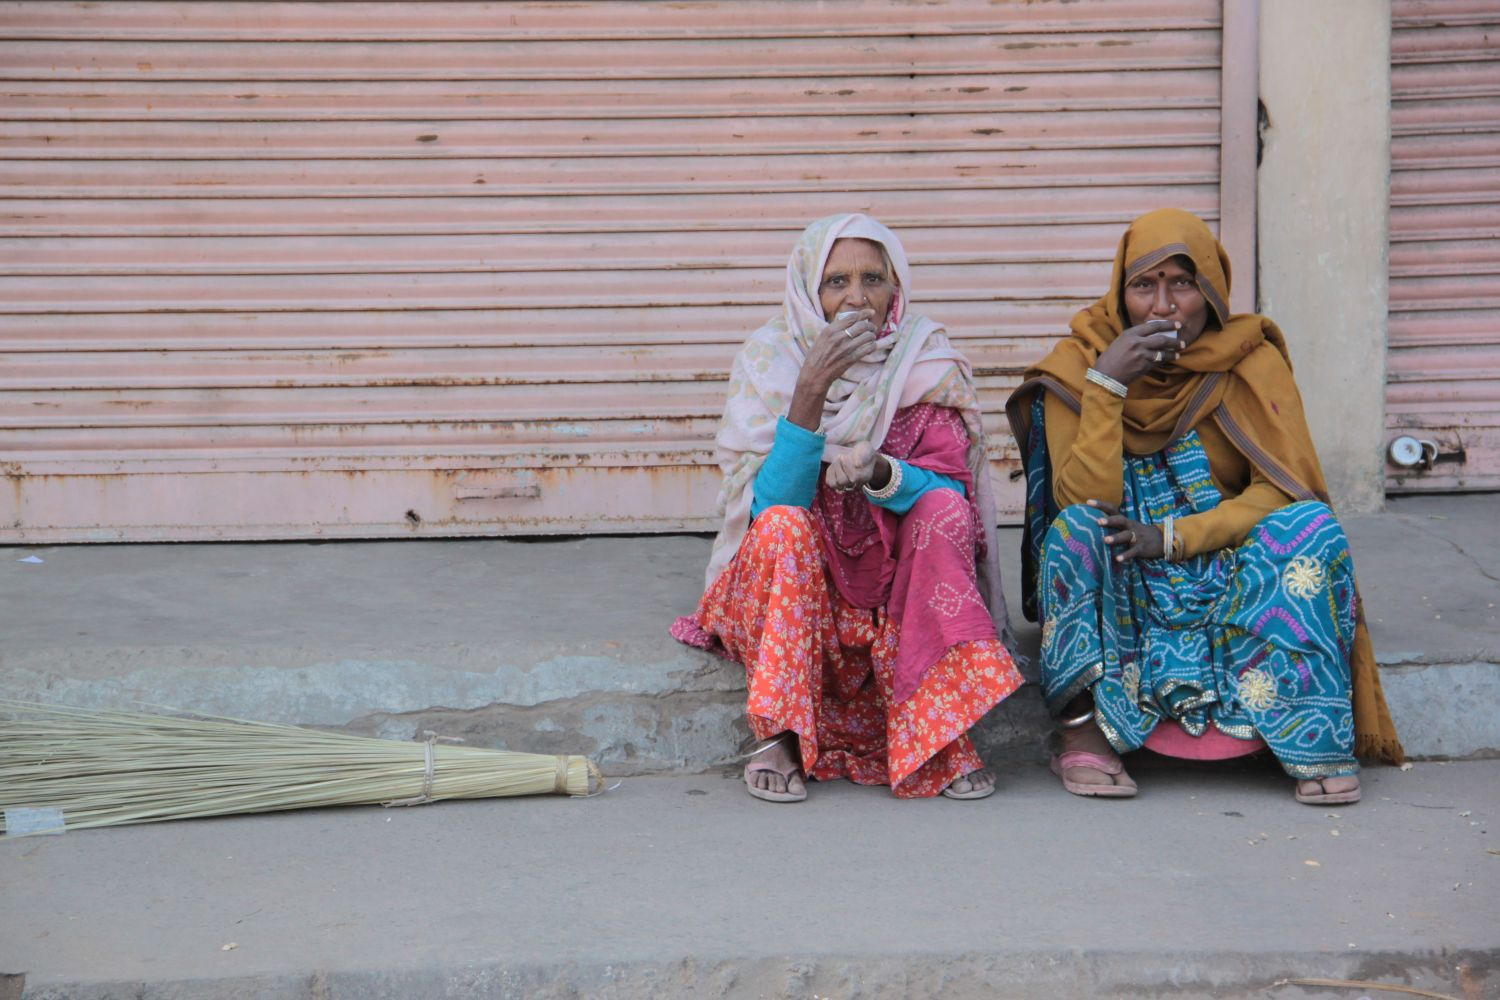 Jaipur | Pink city | Rajasthan | Indian sweepers and indians brooms |©sandrine cohen